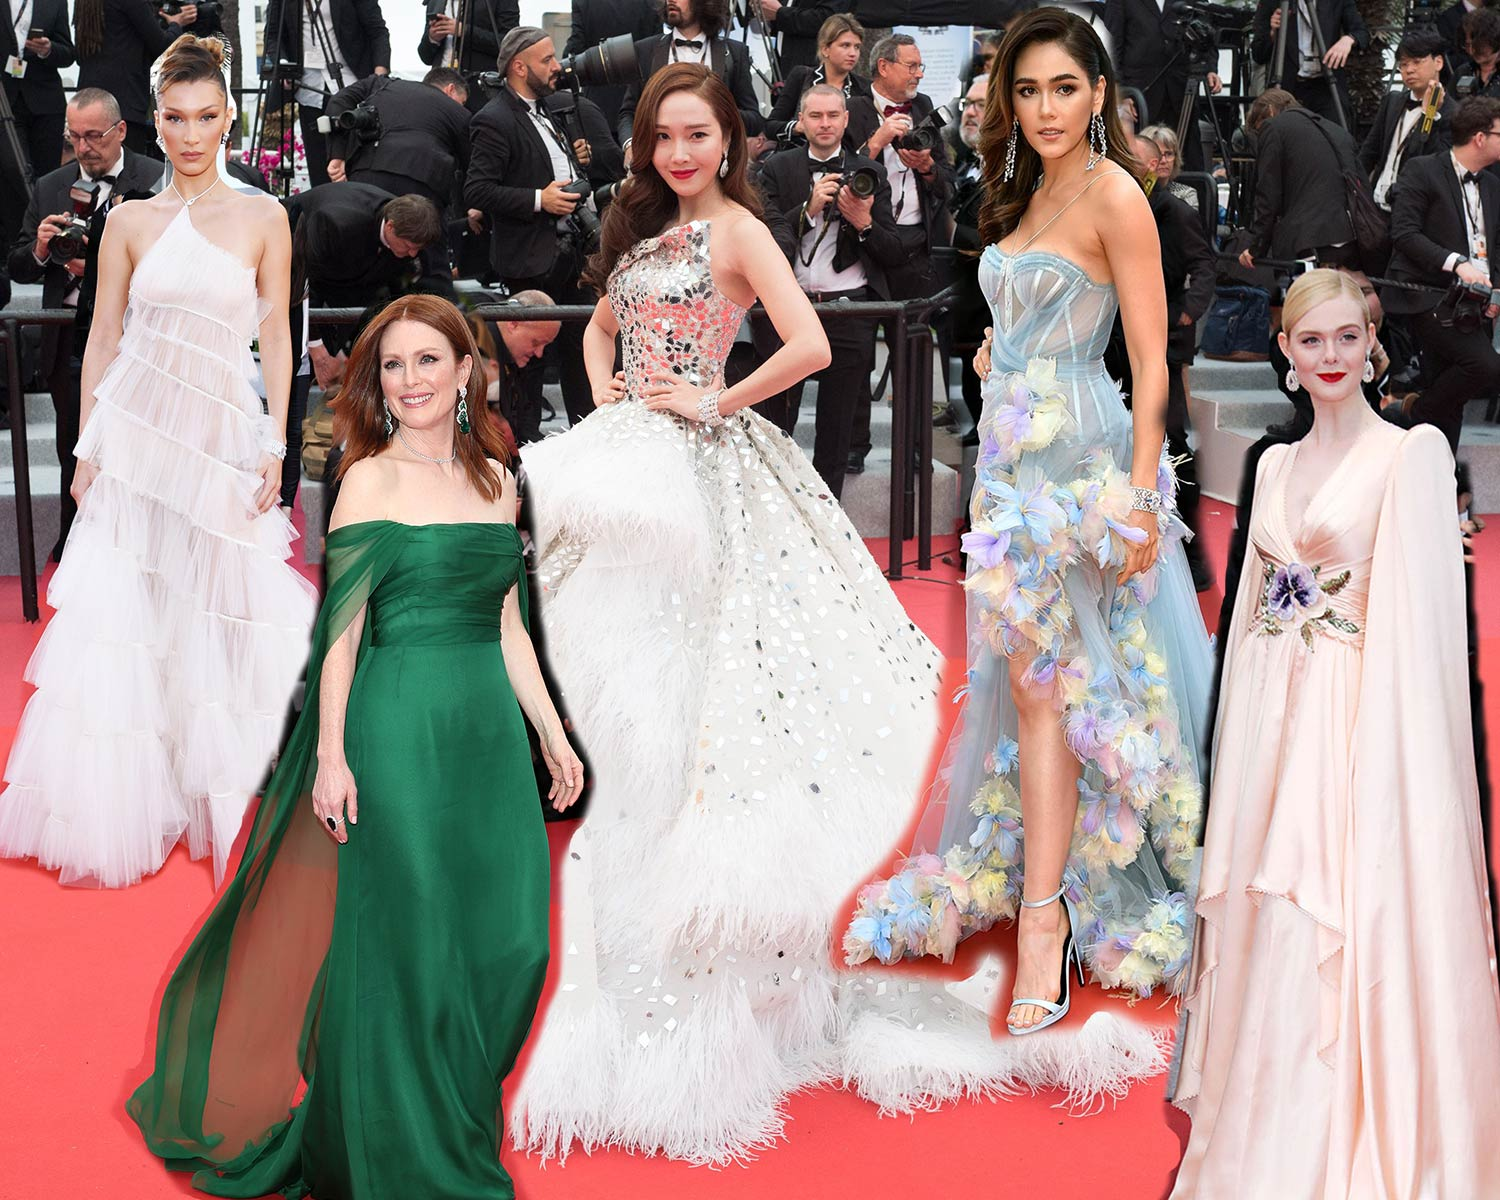 Cannes 2019 red carpet looks